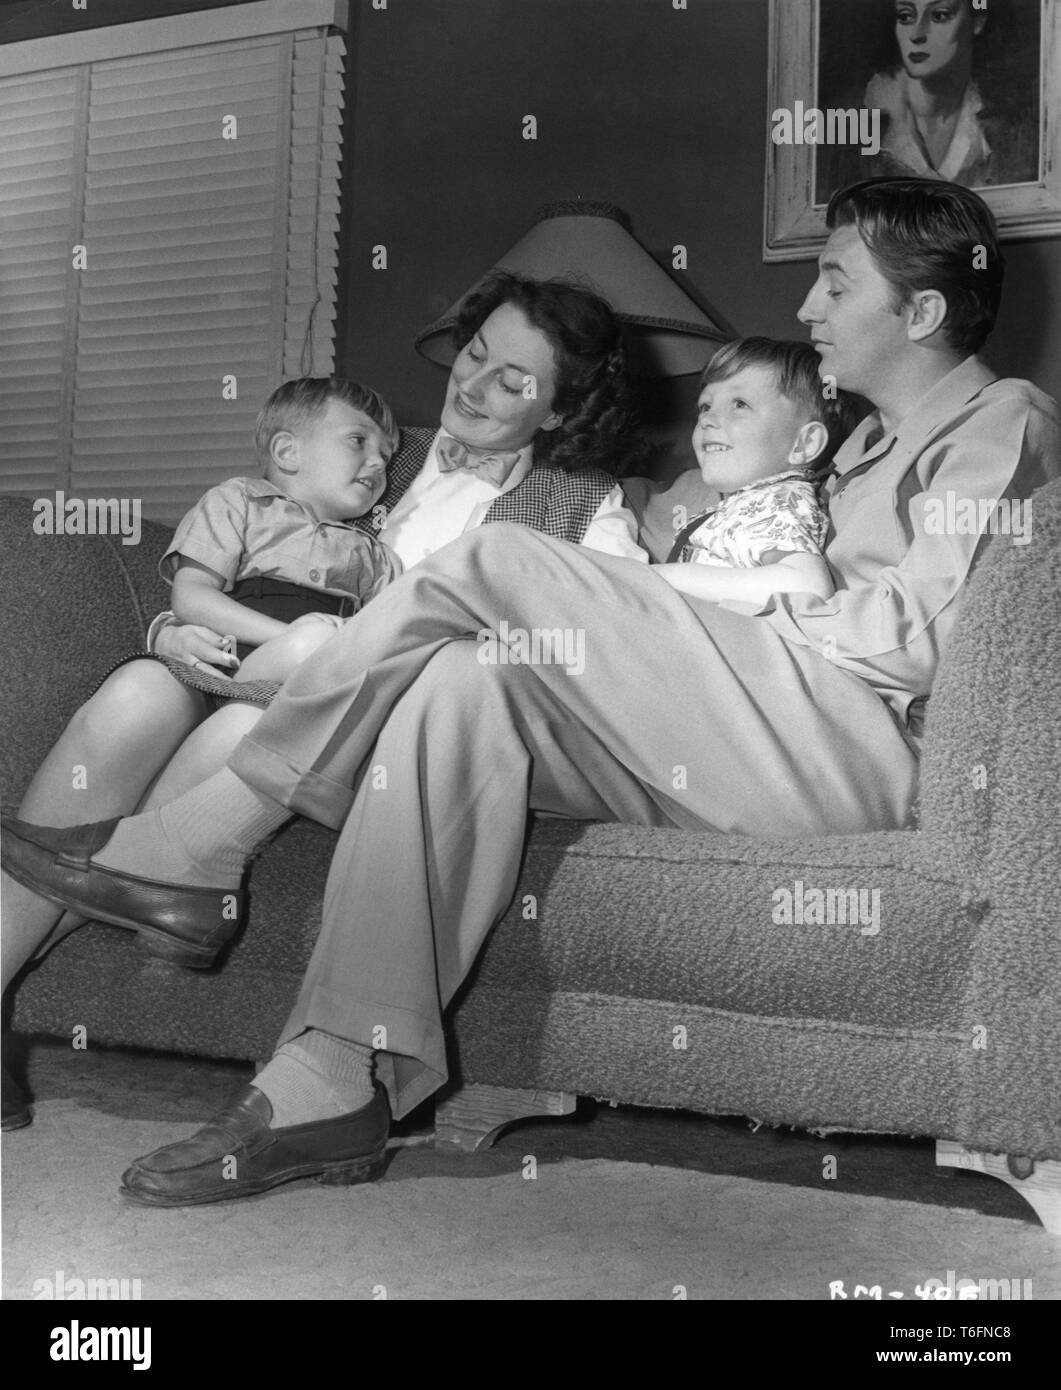 Robert Mitchum At Home With Wife Dorothy And Sons James And Christopher Photo By Ernest A Bachrach 1947 Rko Radio Pictures Inc Stock Photo Alamy